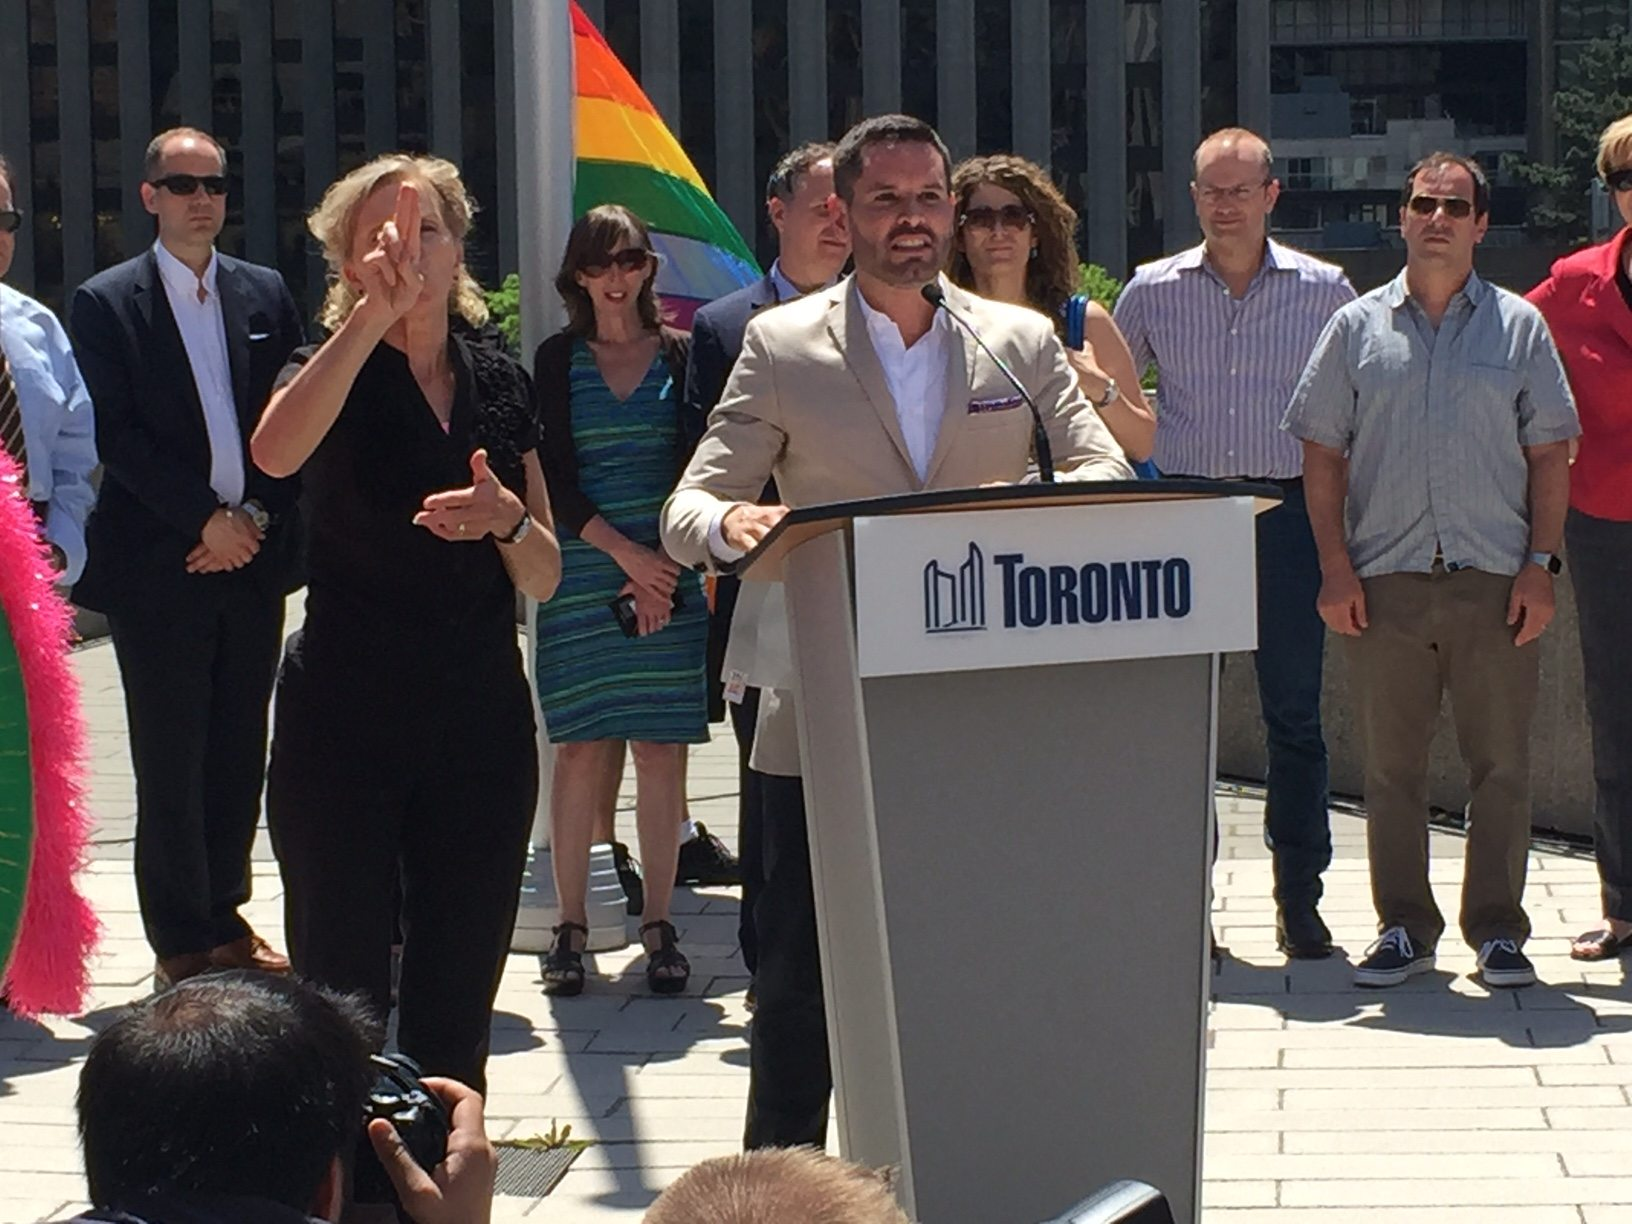 Mathieu Chantelois addresses the crowd, noting that this year's Pride festivities will make Toronto the queerest city for 33 days.